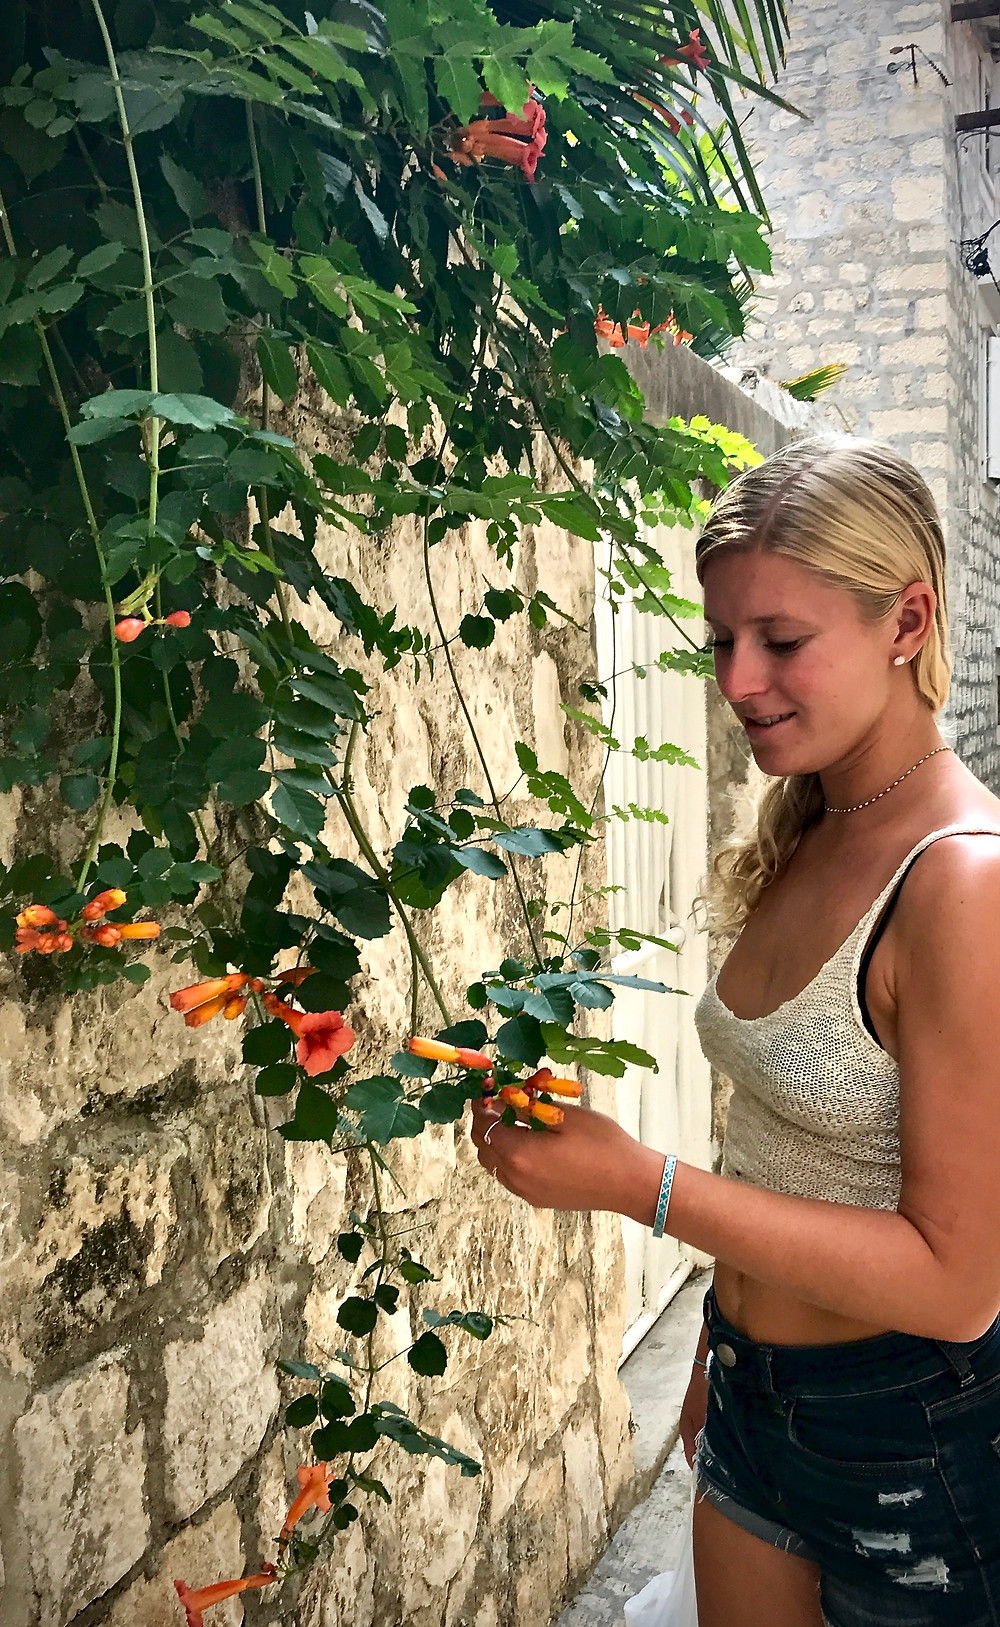 my daughter admiring a trumpet vine on the ubiquitous stone walls of Trogir